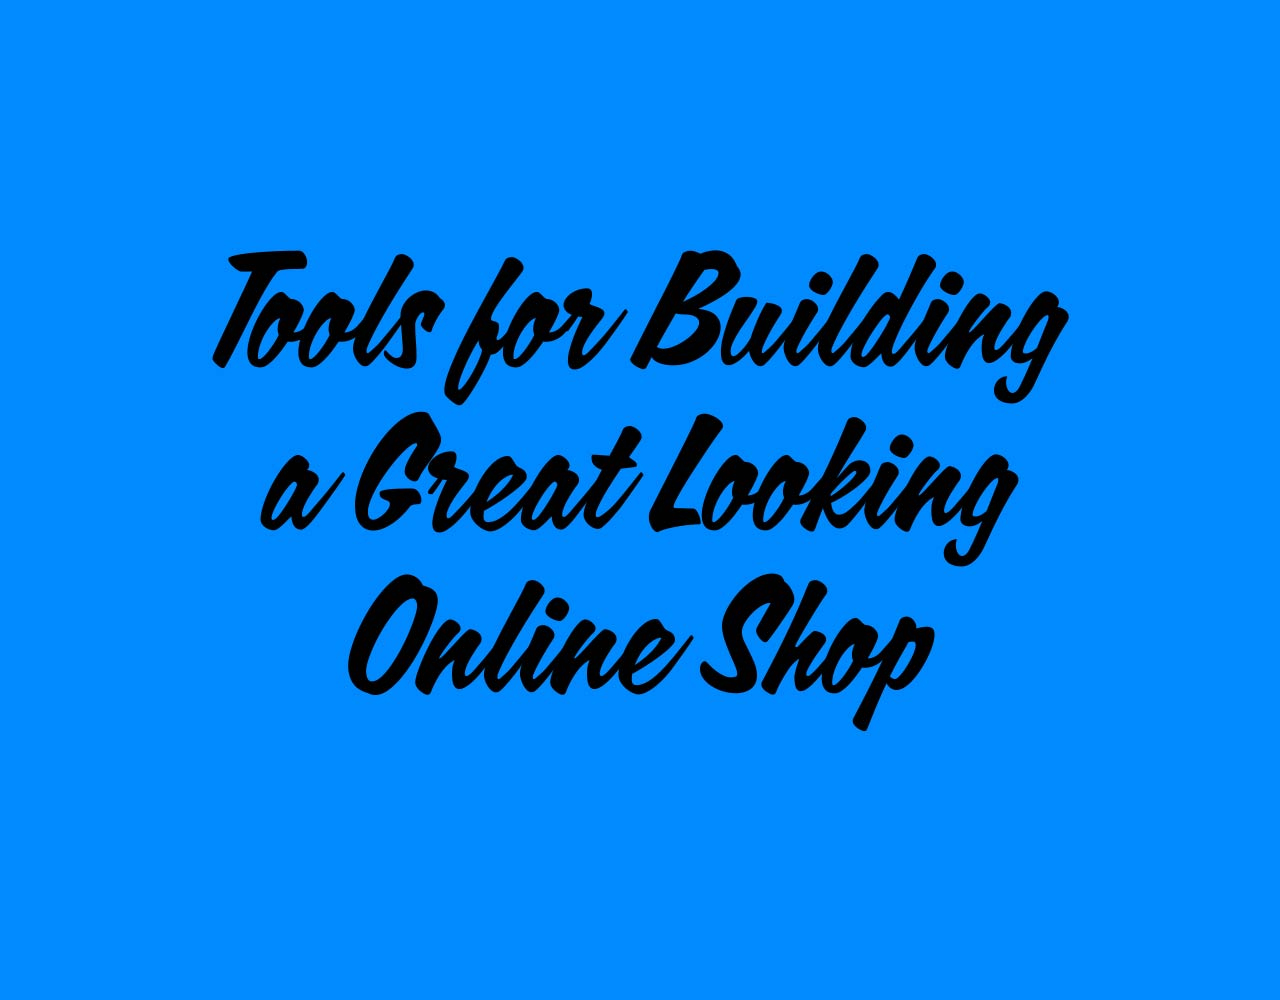 Tools for Building a Great Looking Online Shop